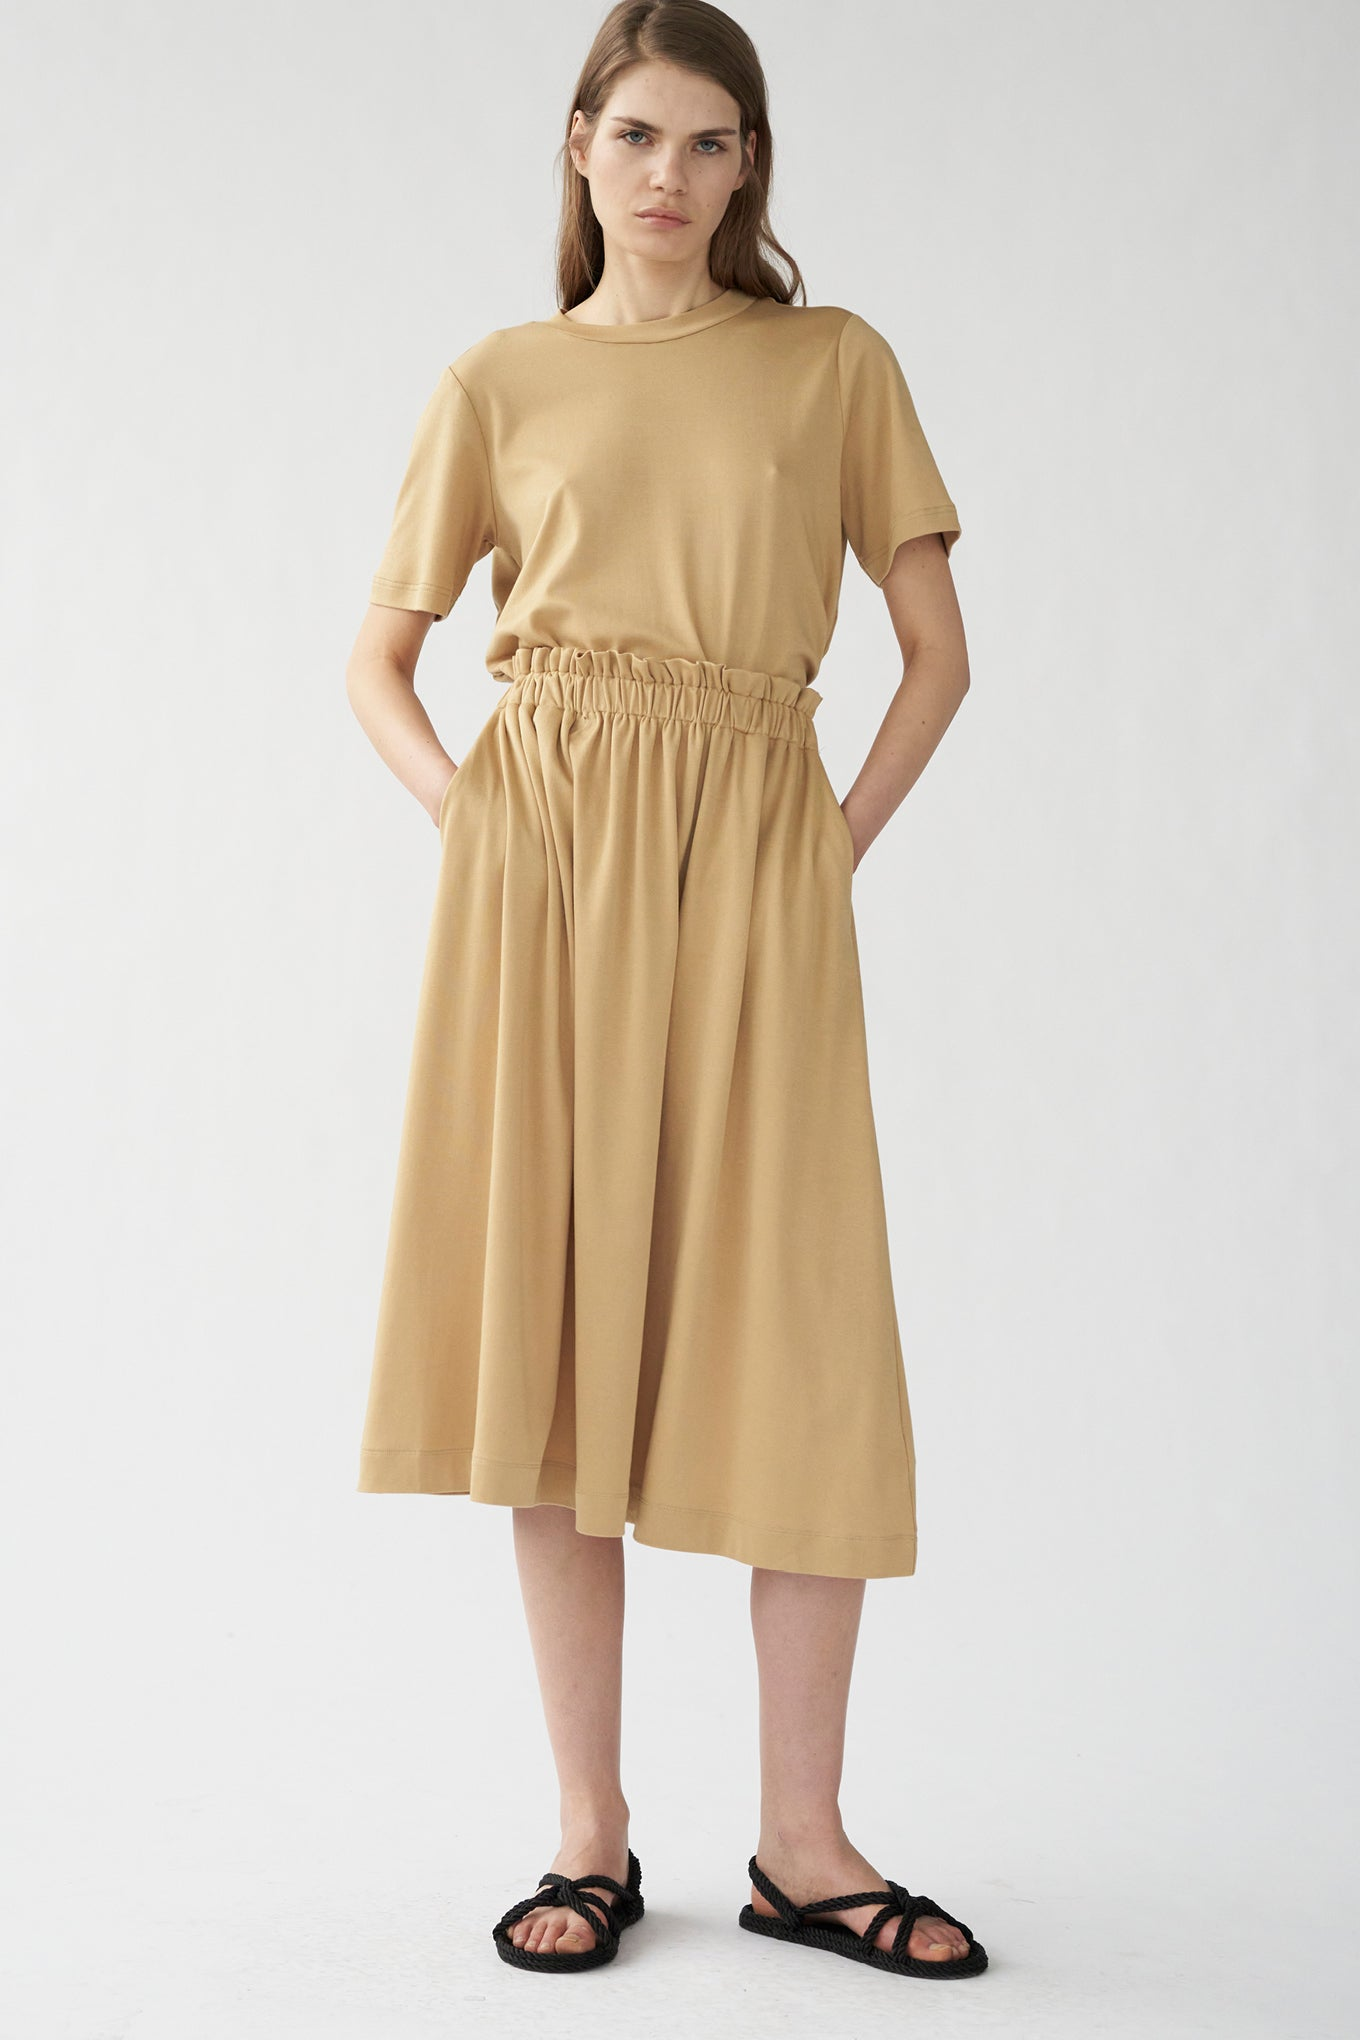 IVY SKIRT - SUNKISSED BEIGE - SILK/COTTON JERSEY